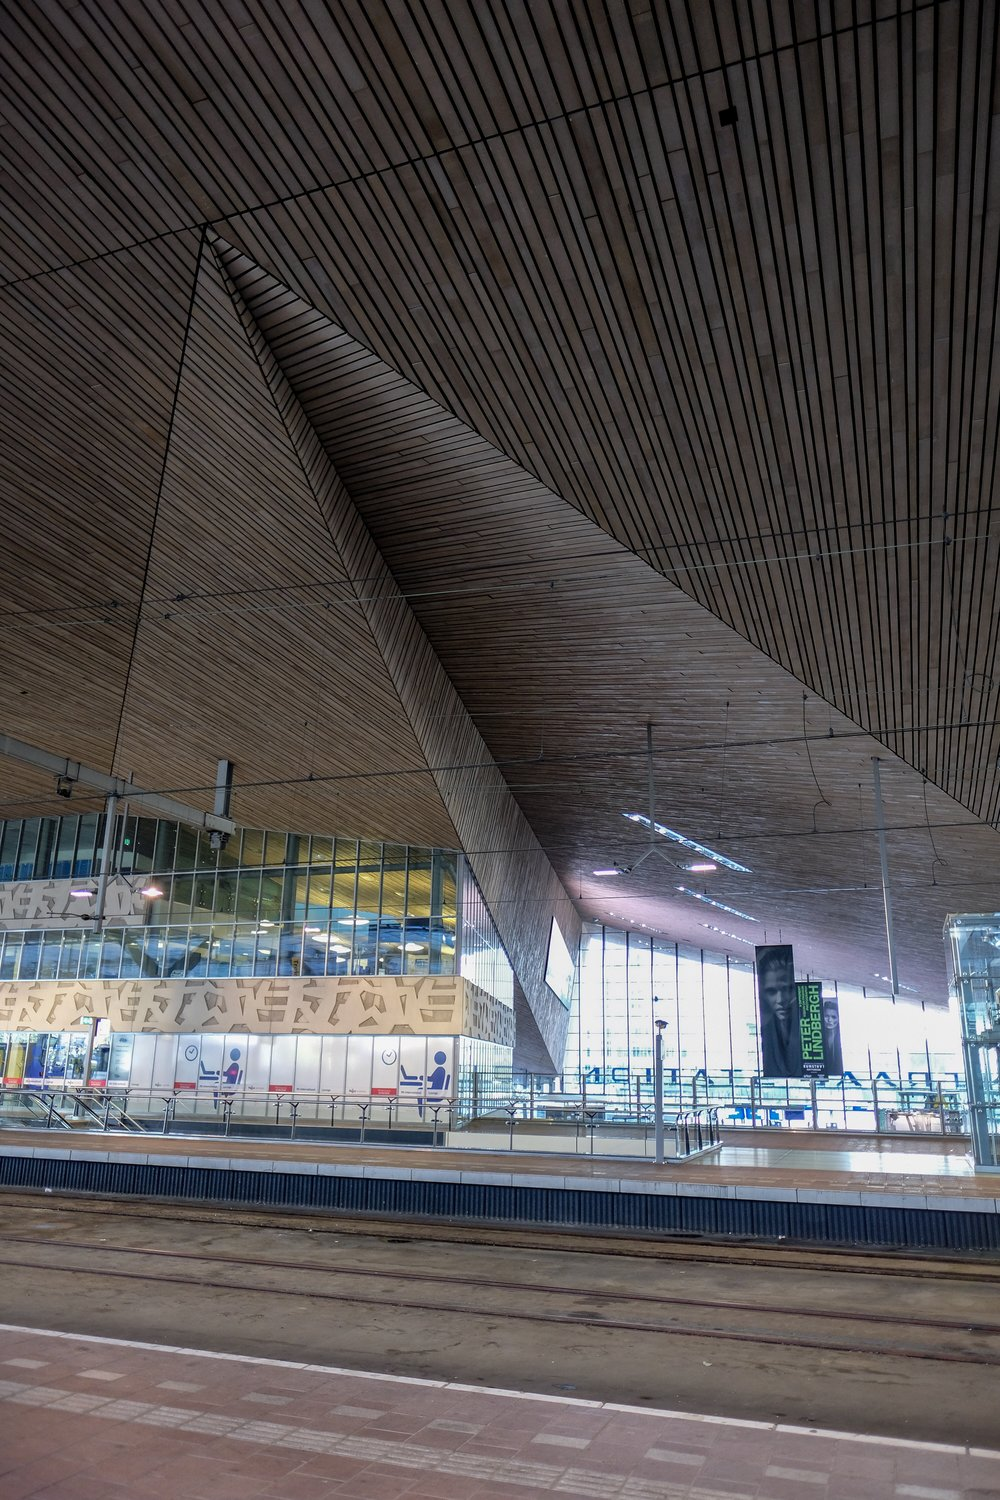 Rotterdam Centraal Train station.  It reminds me of a giant paper airplane.